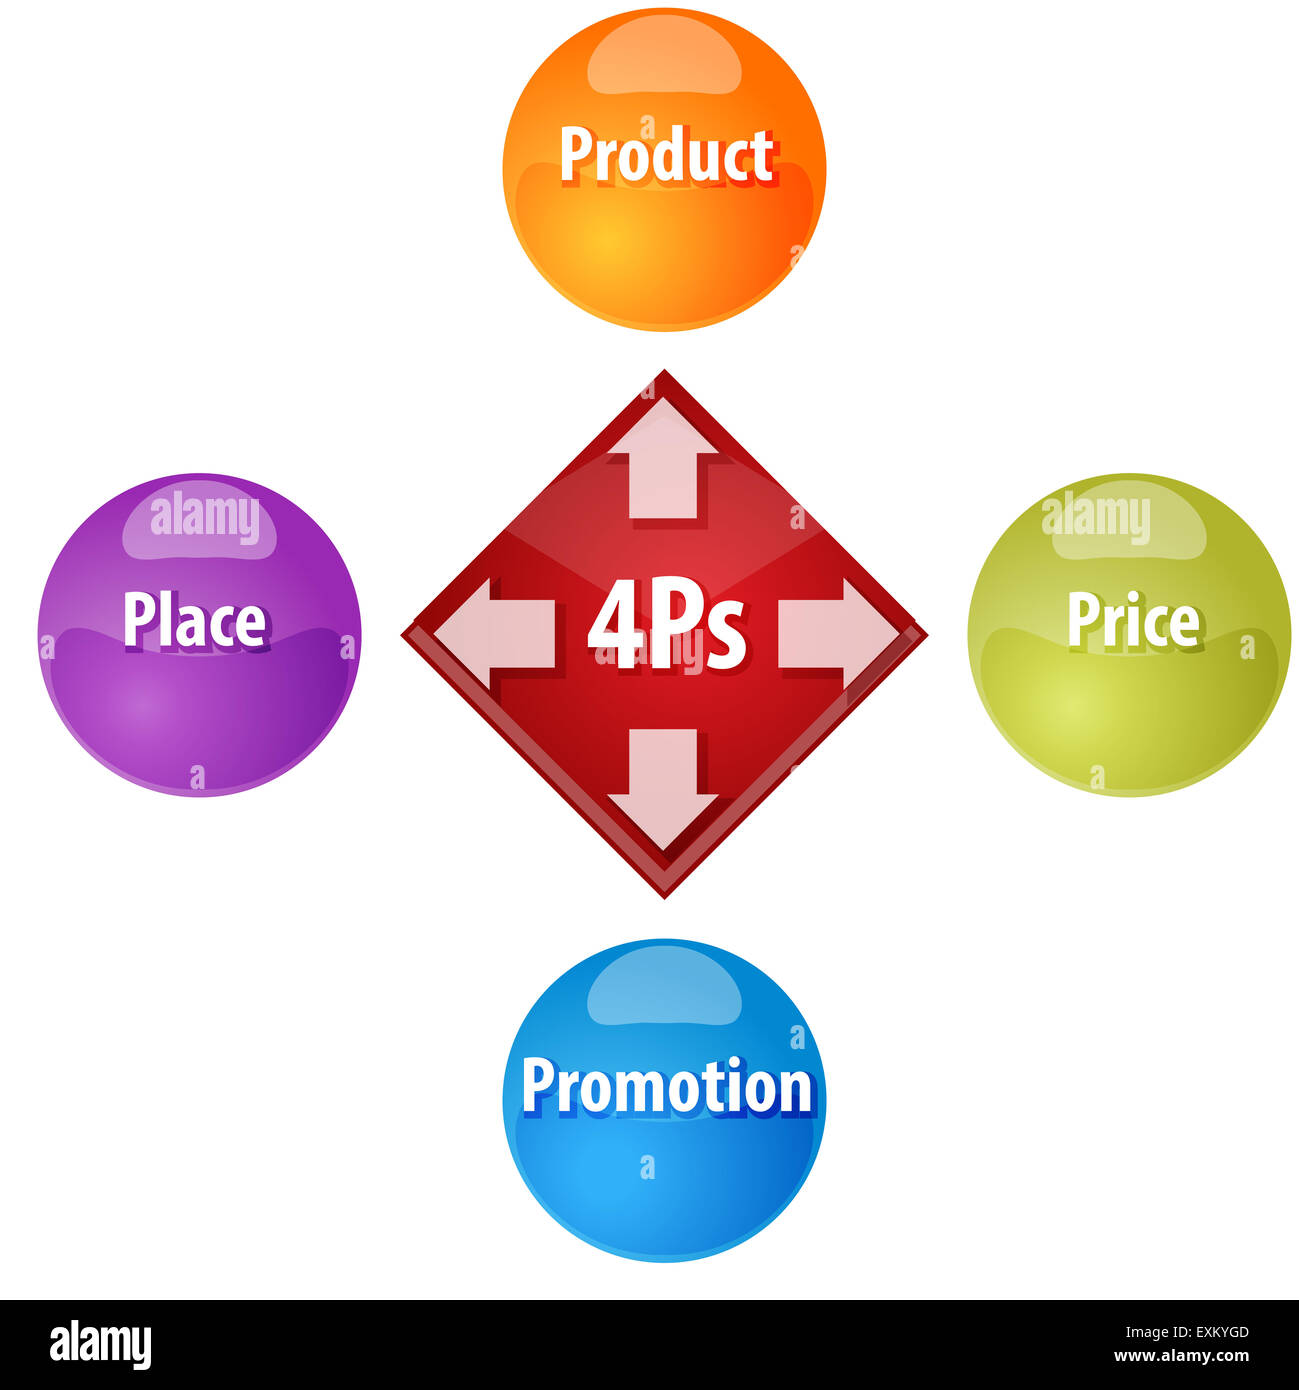 Business strategy concept infographic diagram illustration of 4Ps ...